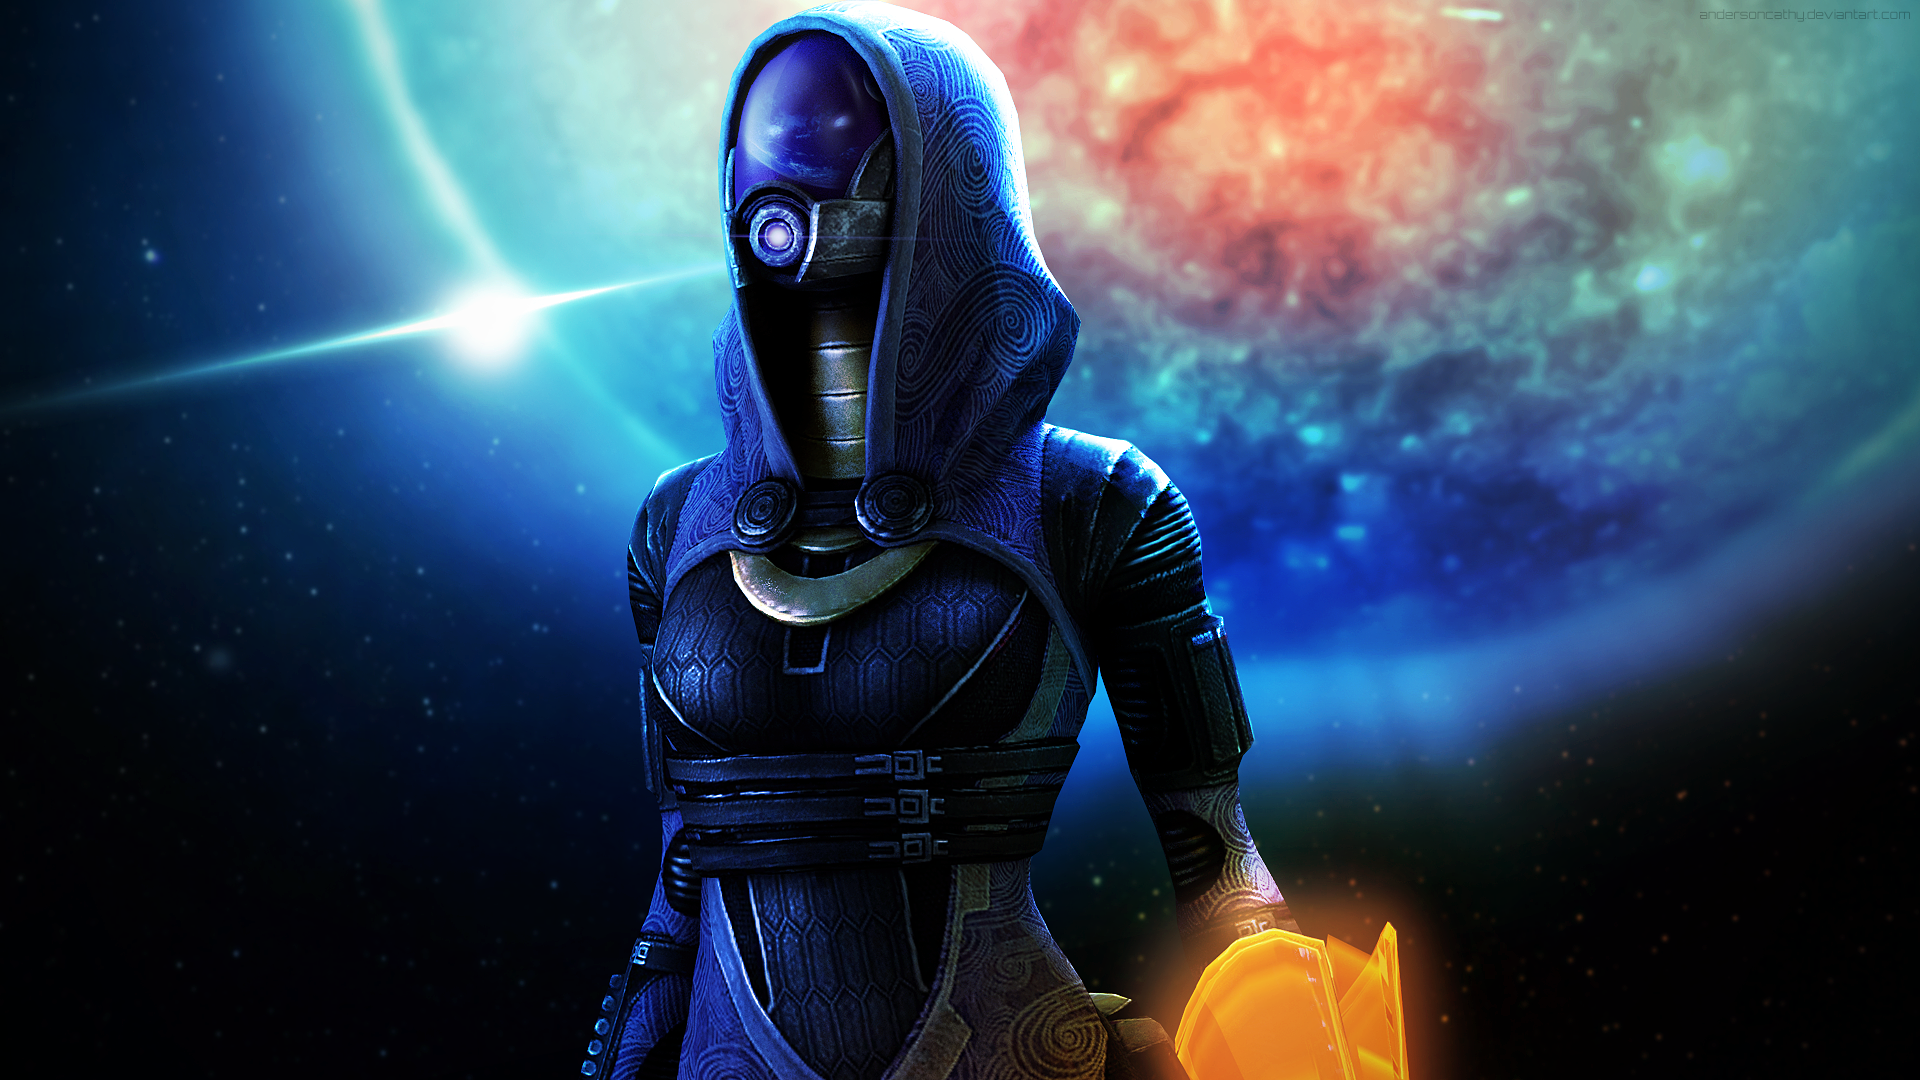 tali__zorah_vas_normandy_by_andersoncathy-d5ry3q0.png